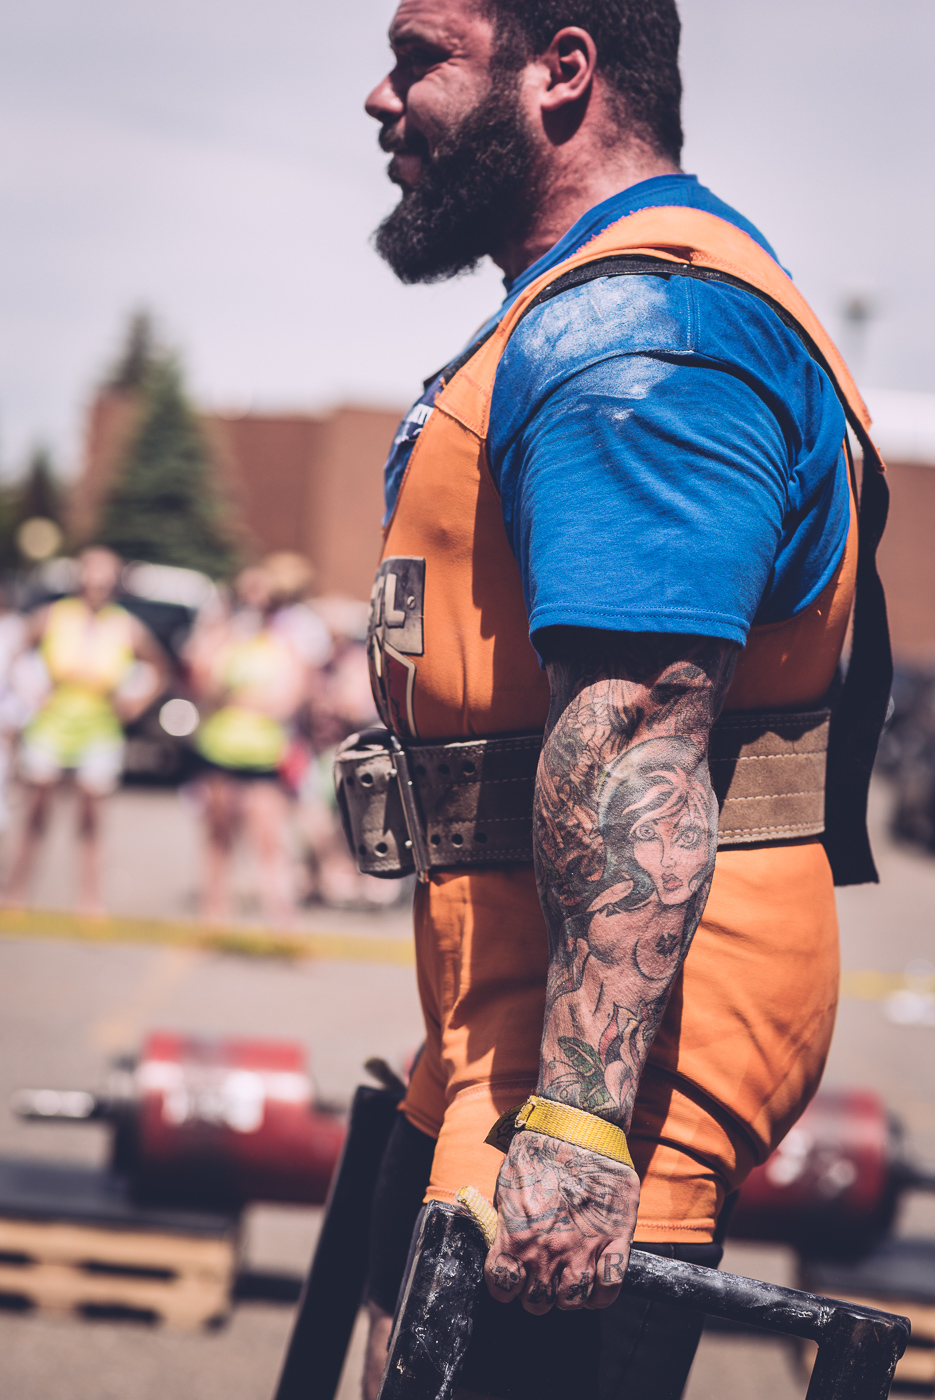 strongman_2016_blog29.jpg